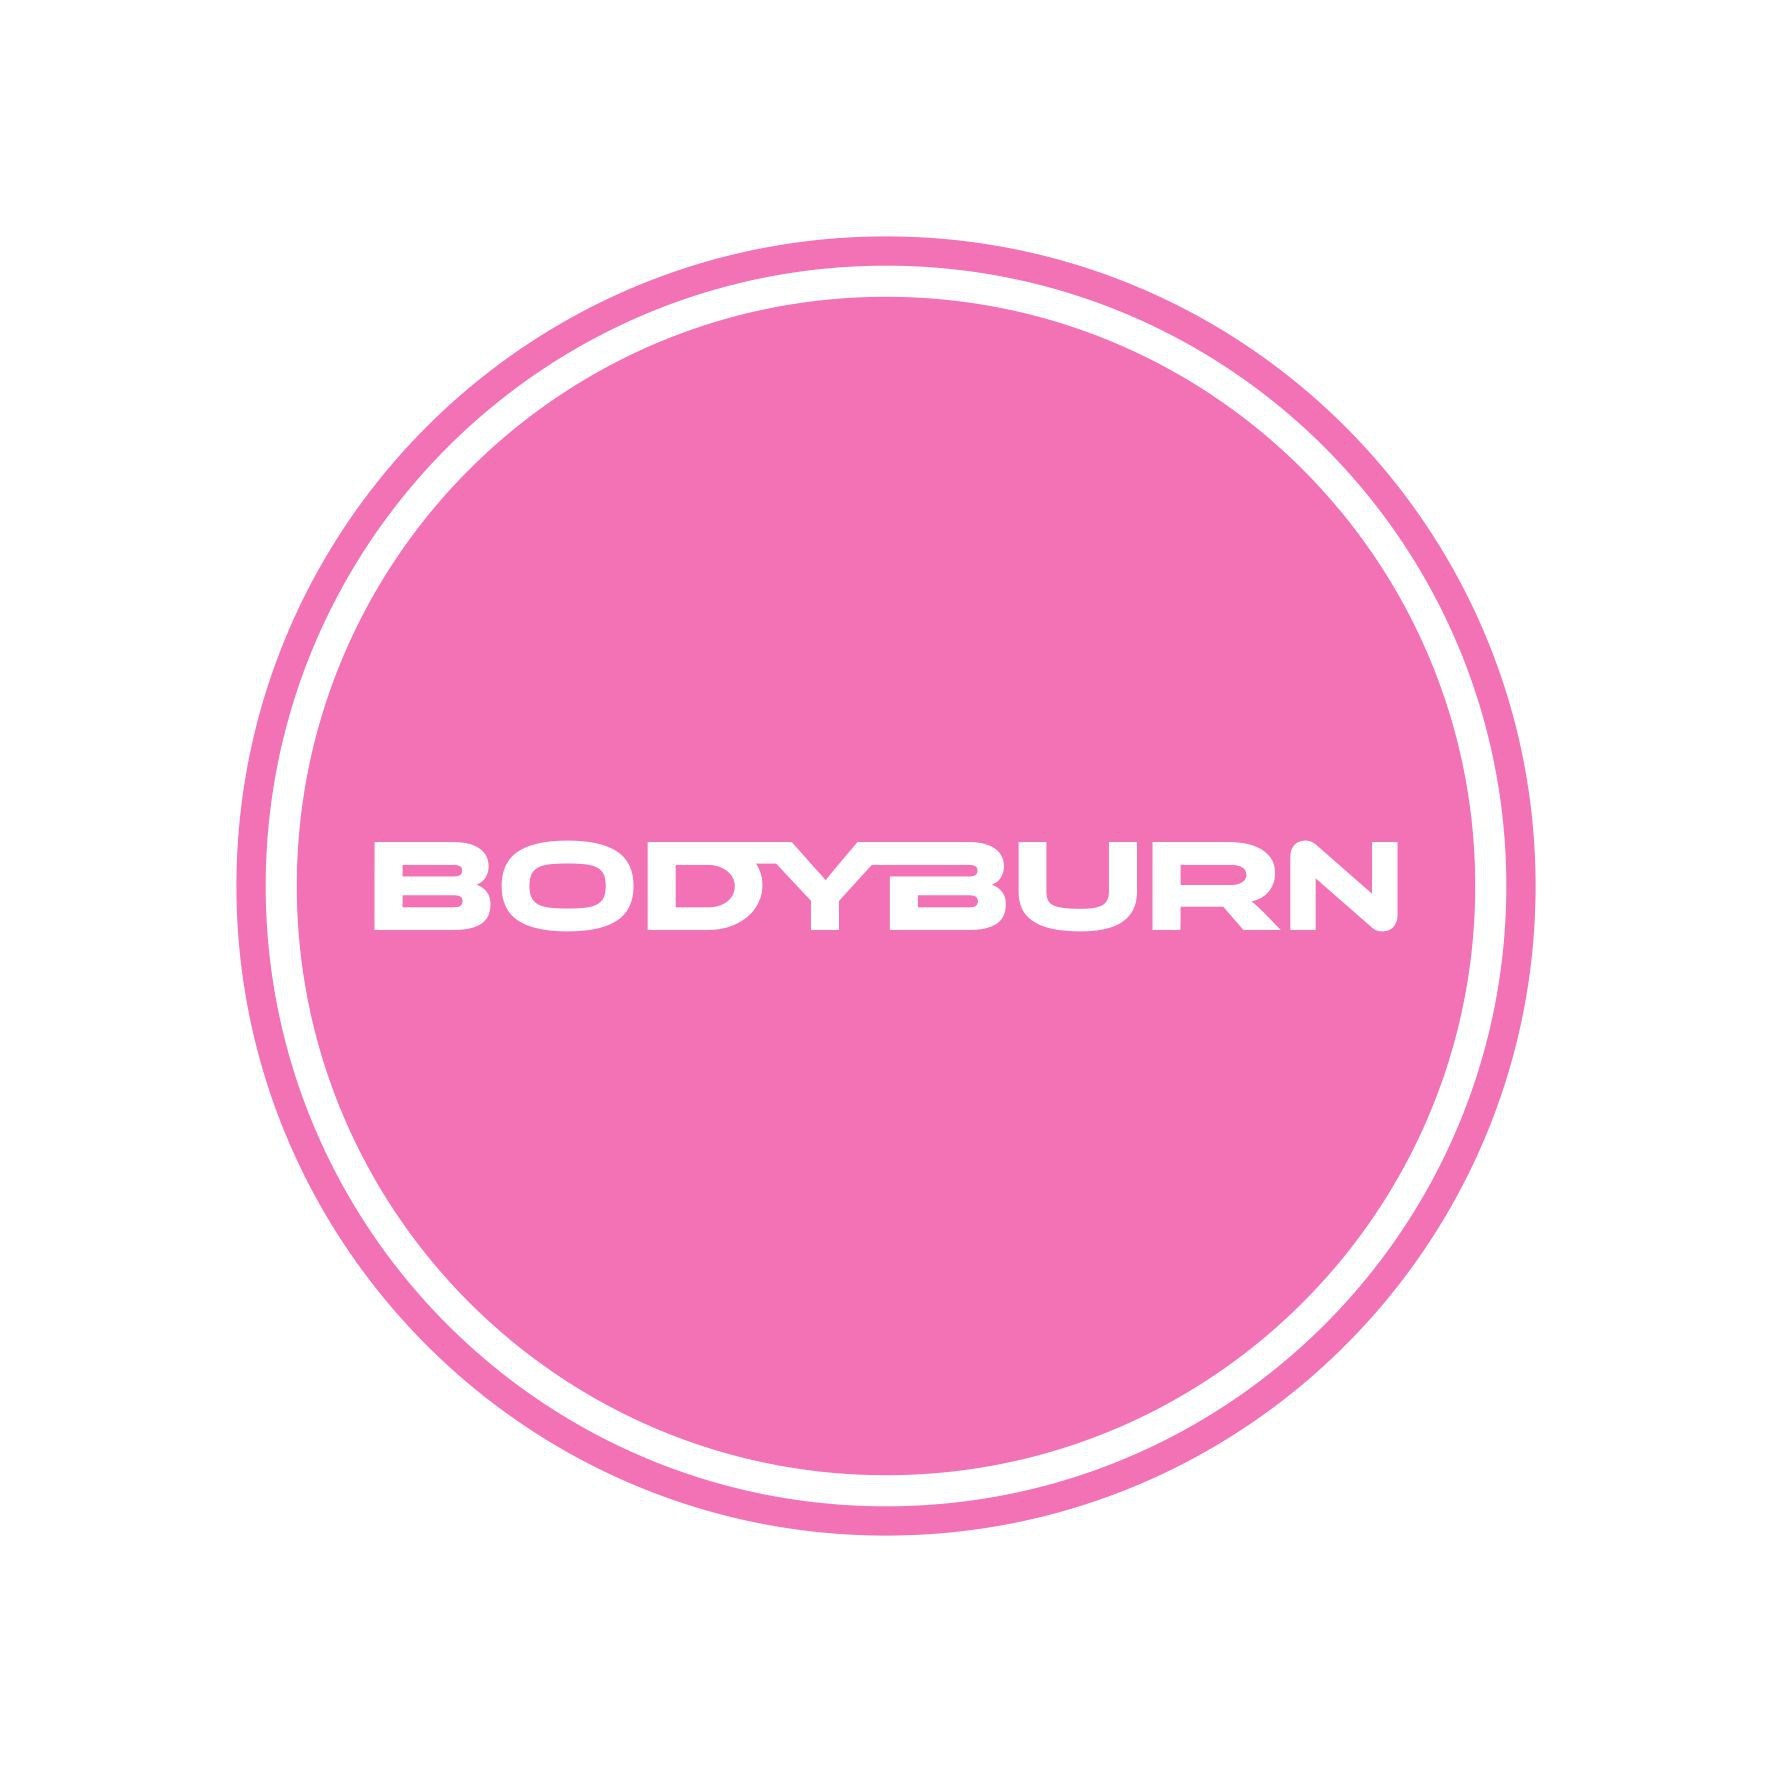 BodyBurn